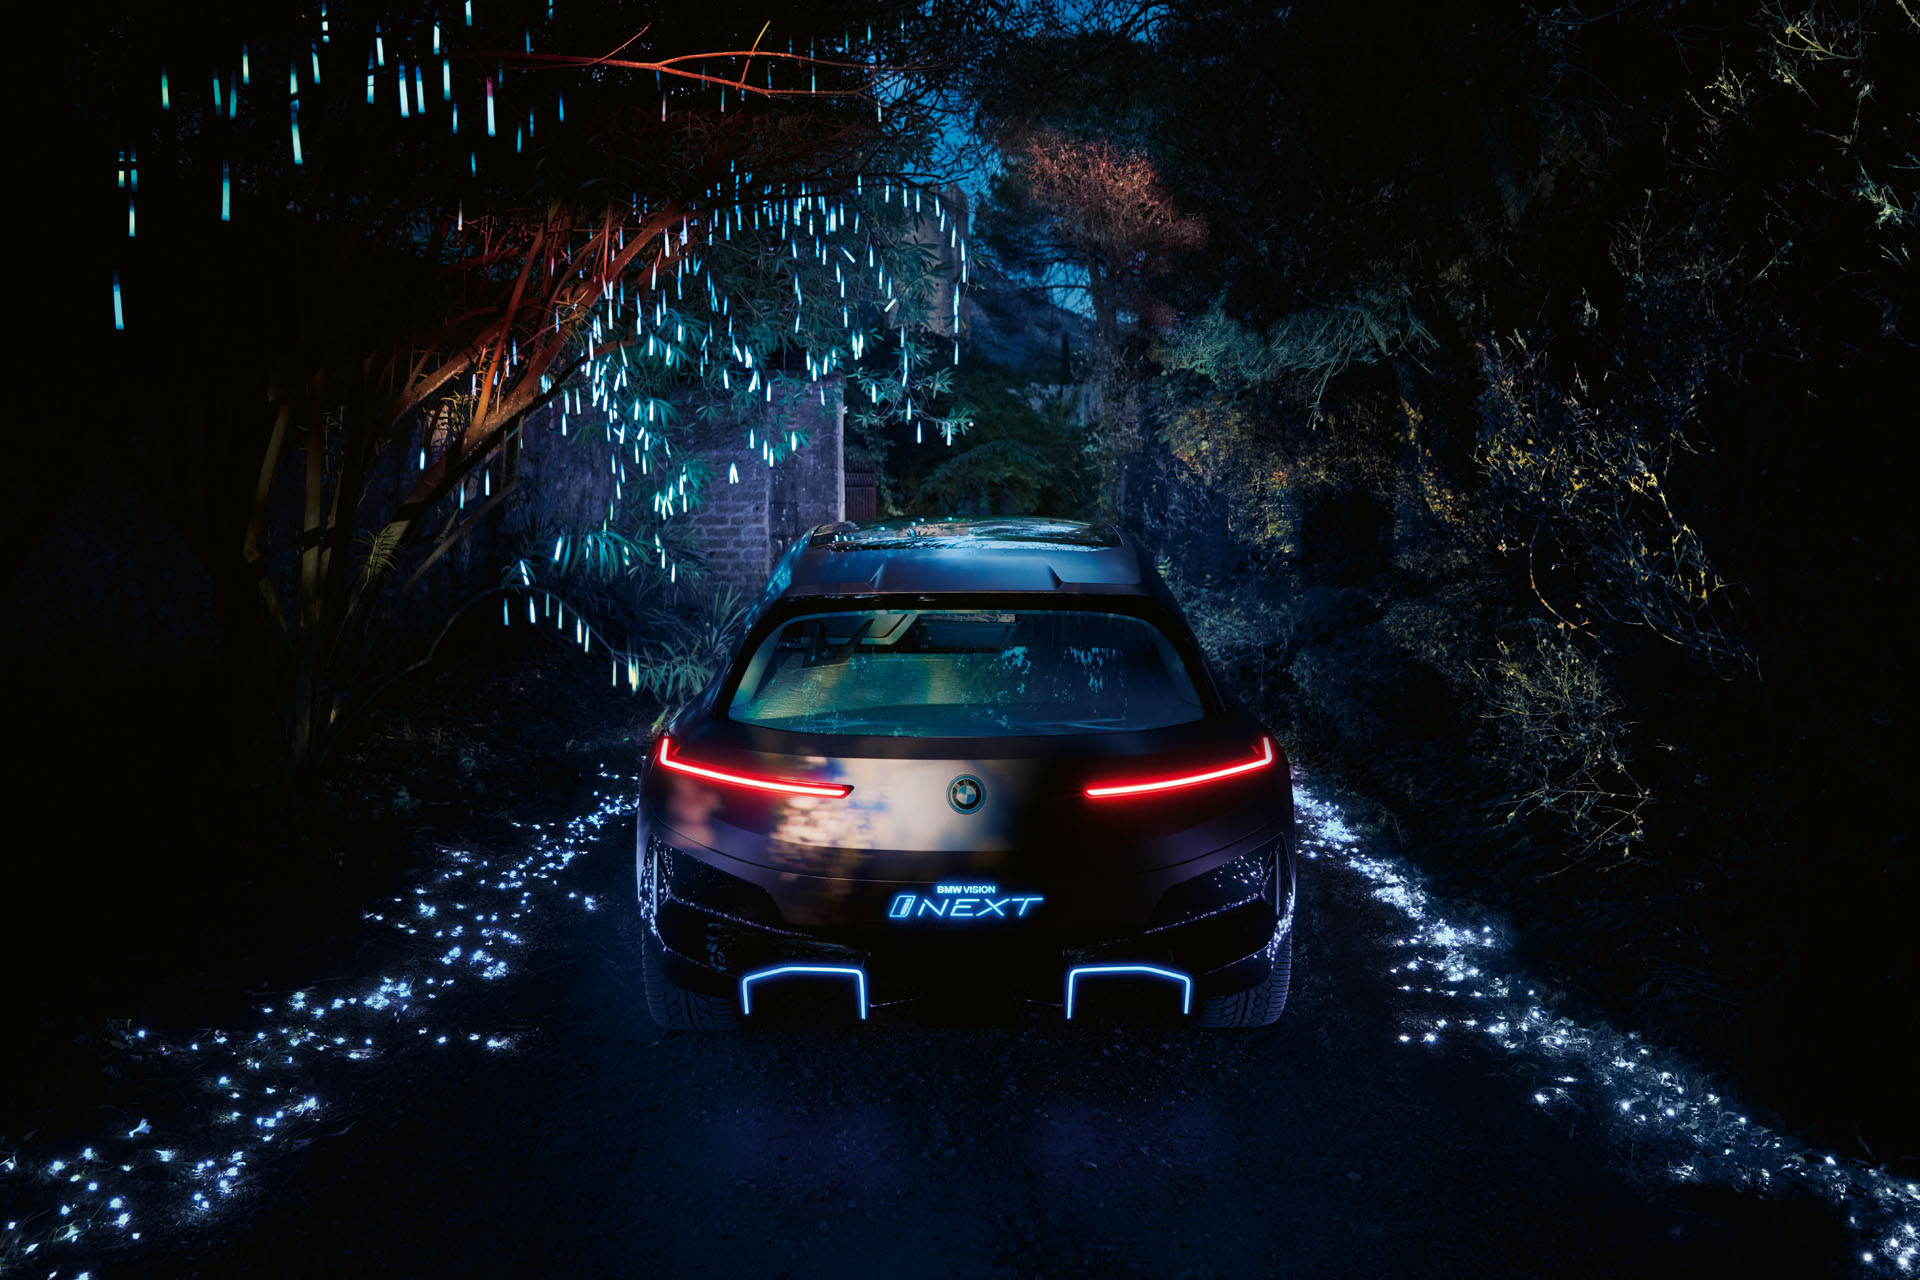 BMW iNEXT crossover concept LED